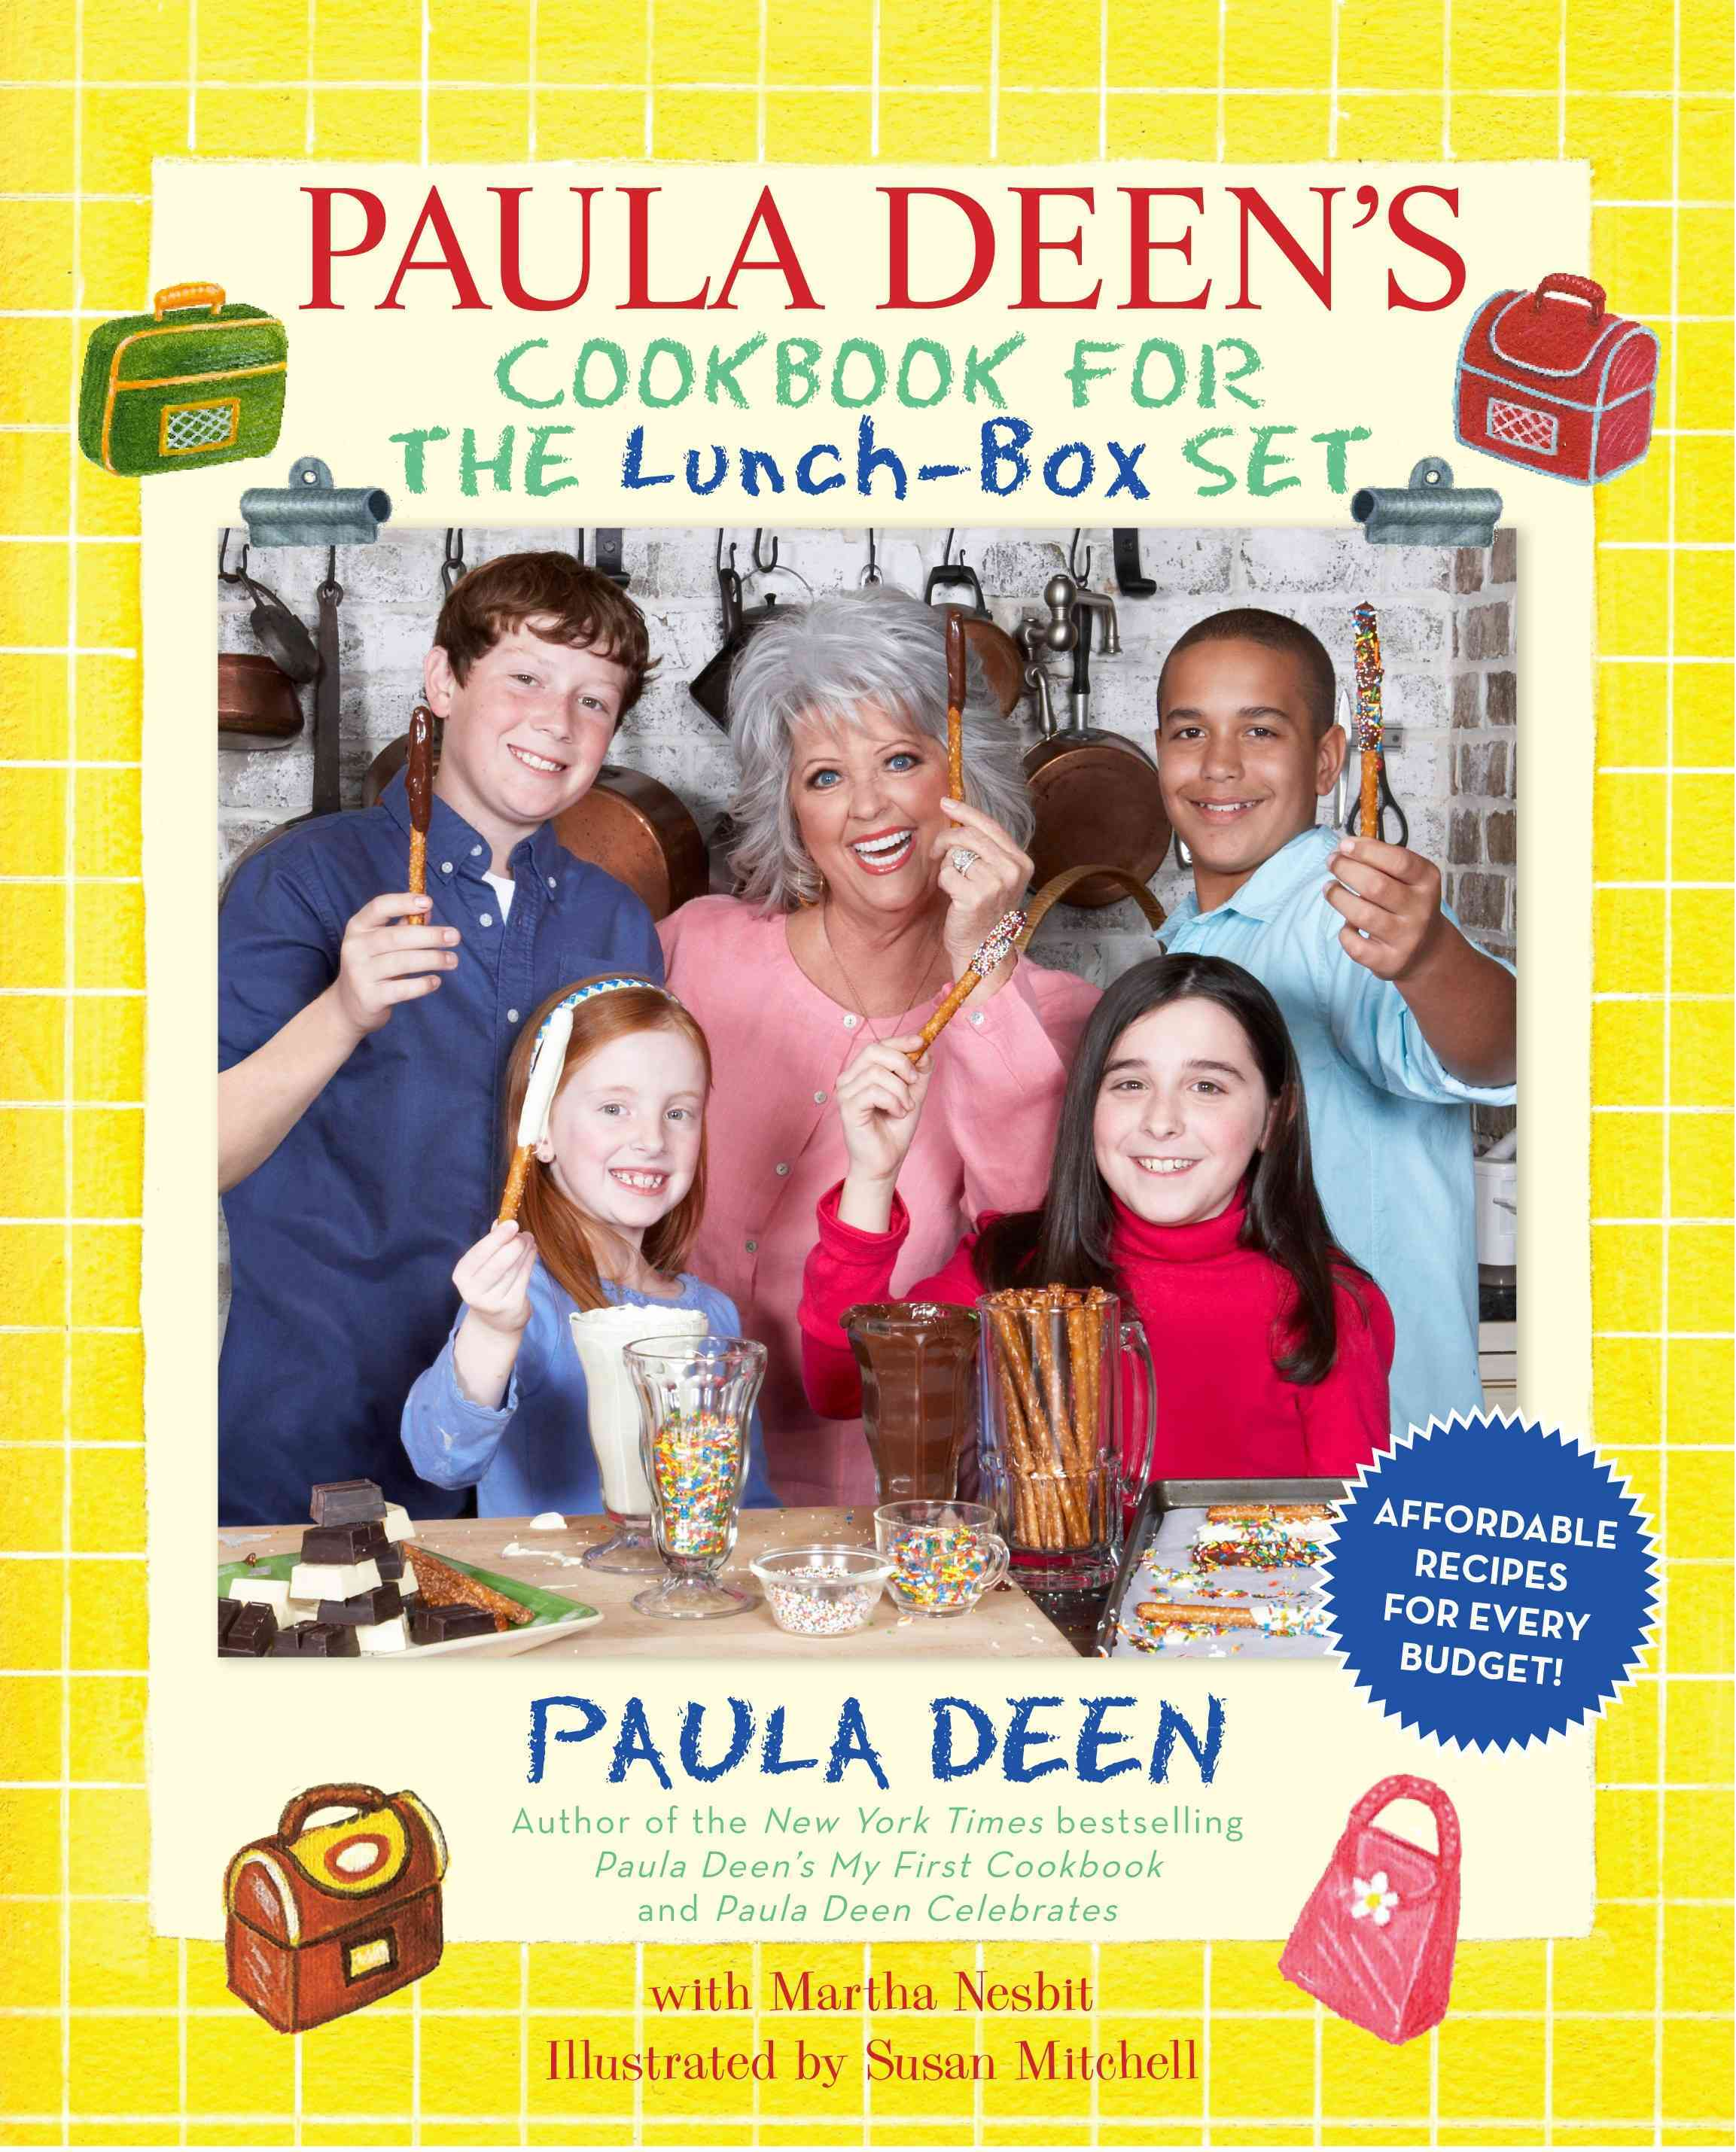 Paula Deen's Cookbook for the Lunch-Box Set (Hardcover)